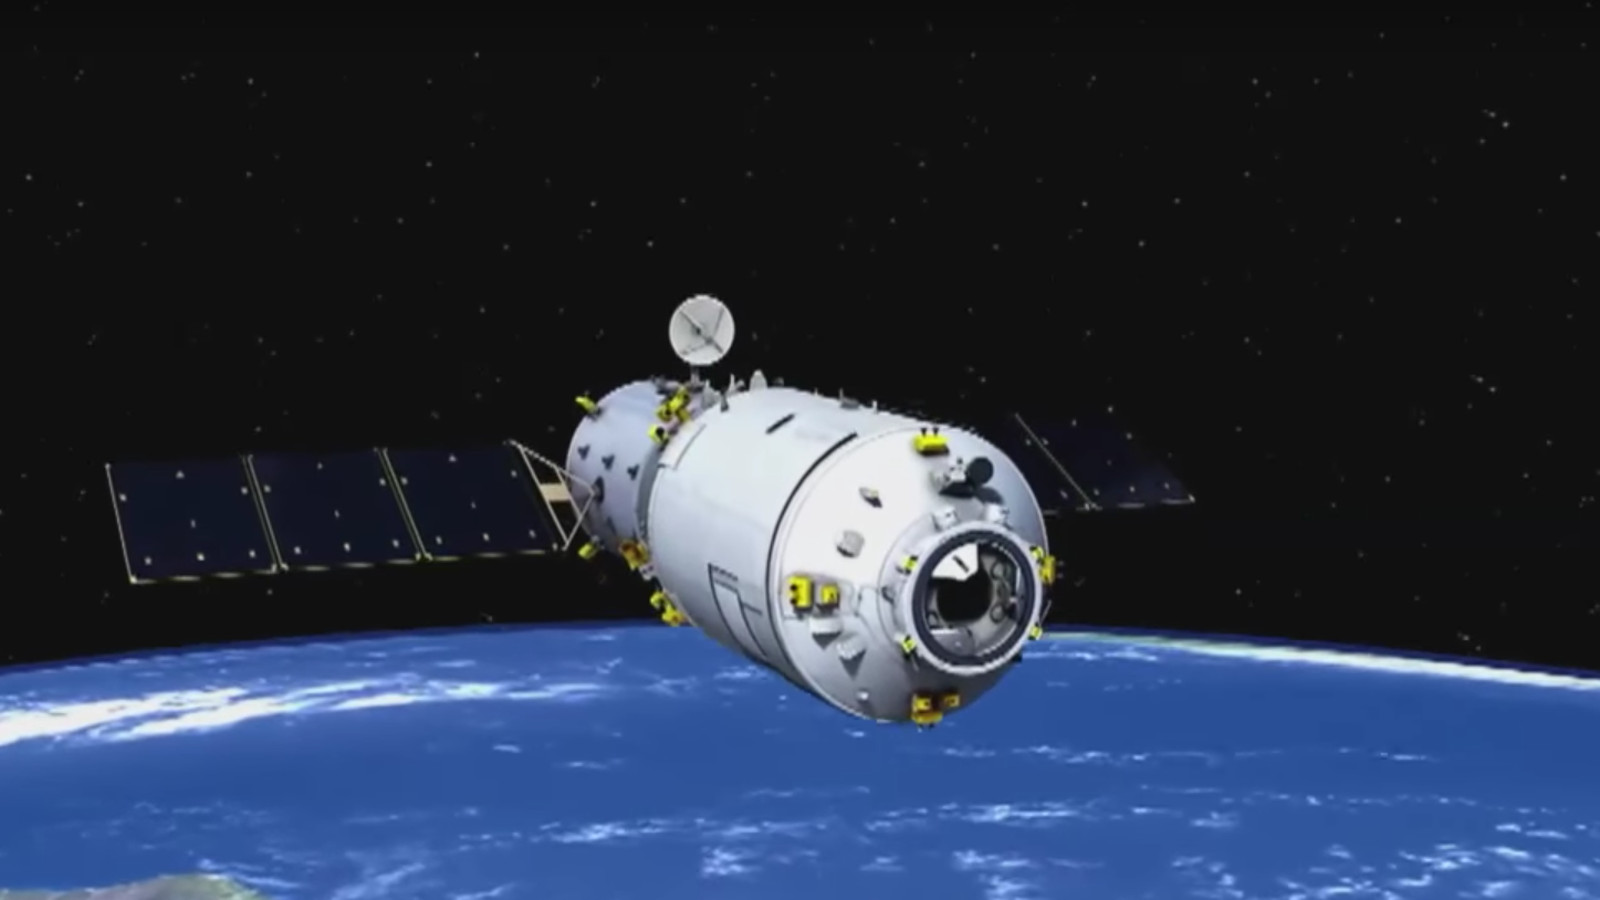 China's first automated cargo spaceship has docked with the Tiangong 2 space station